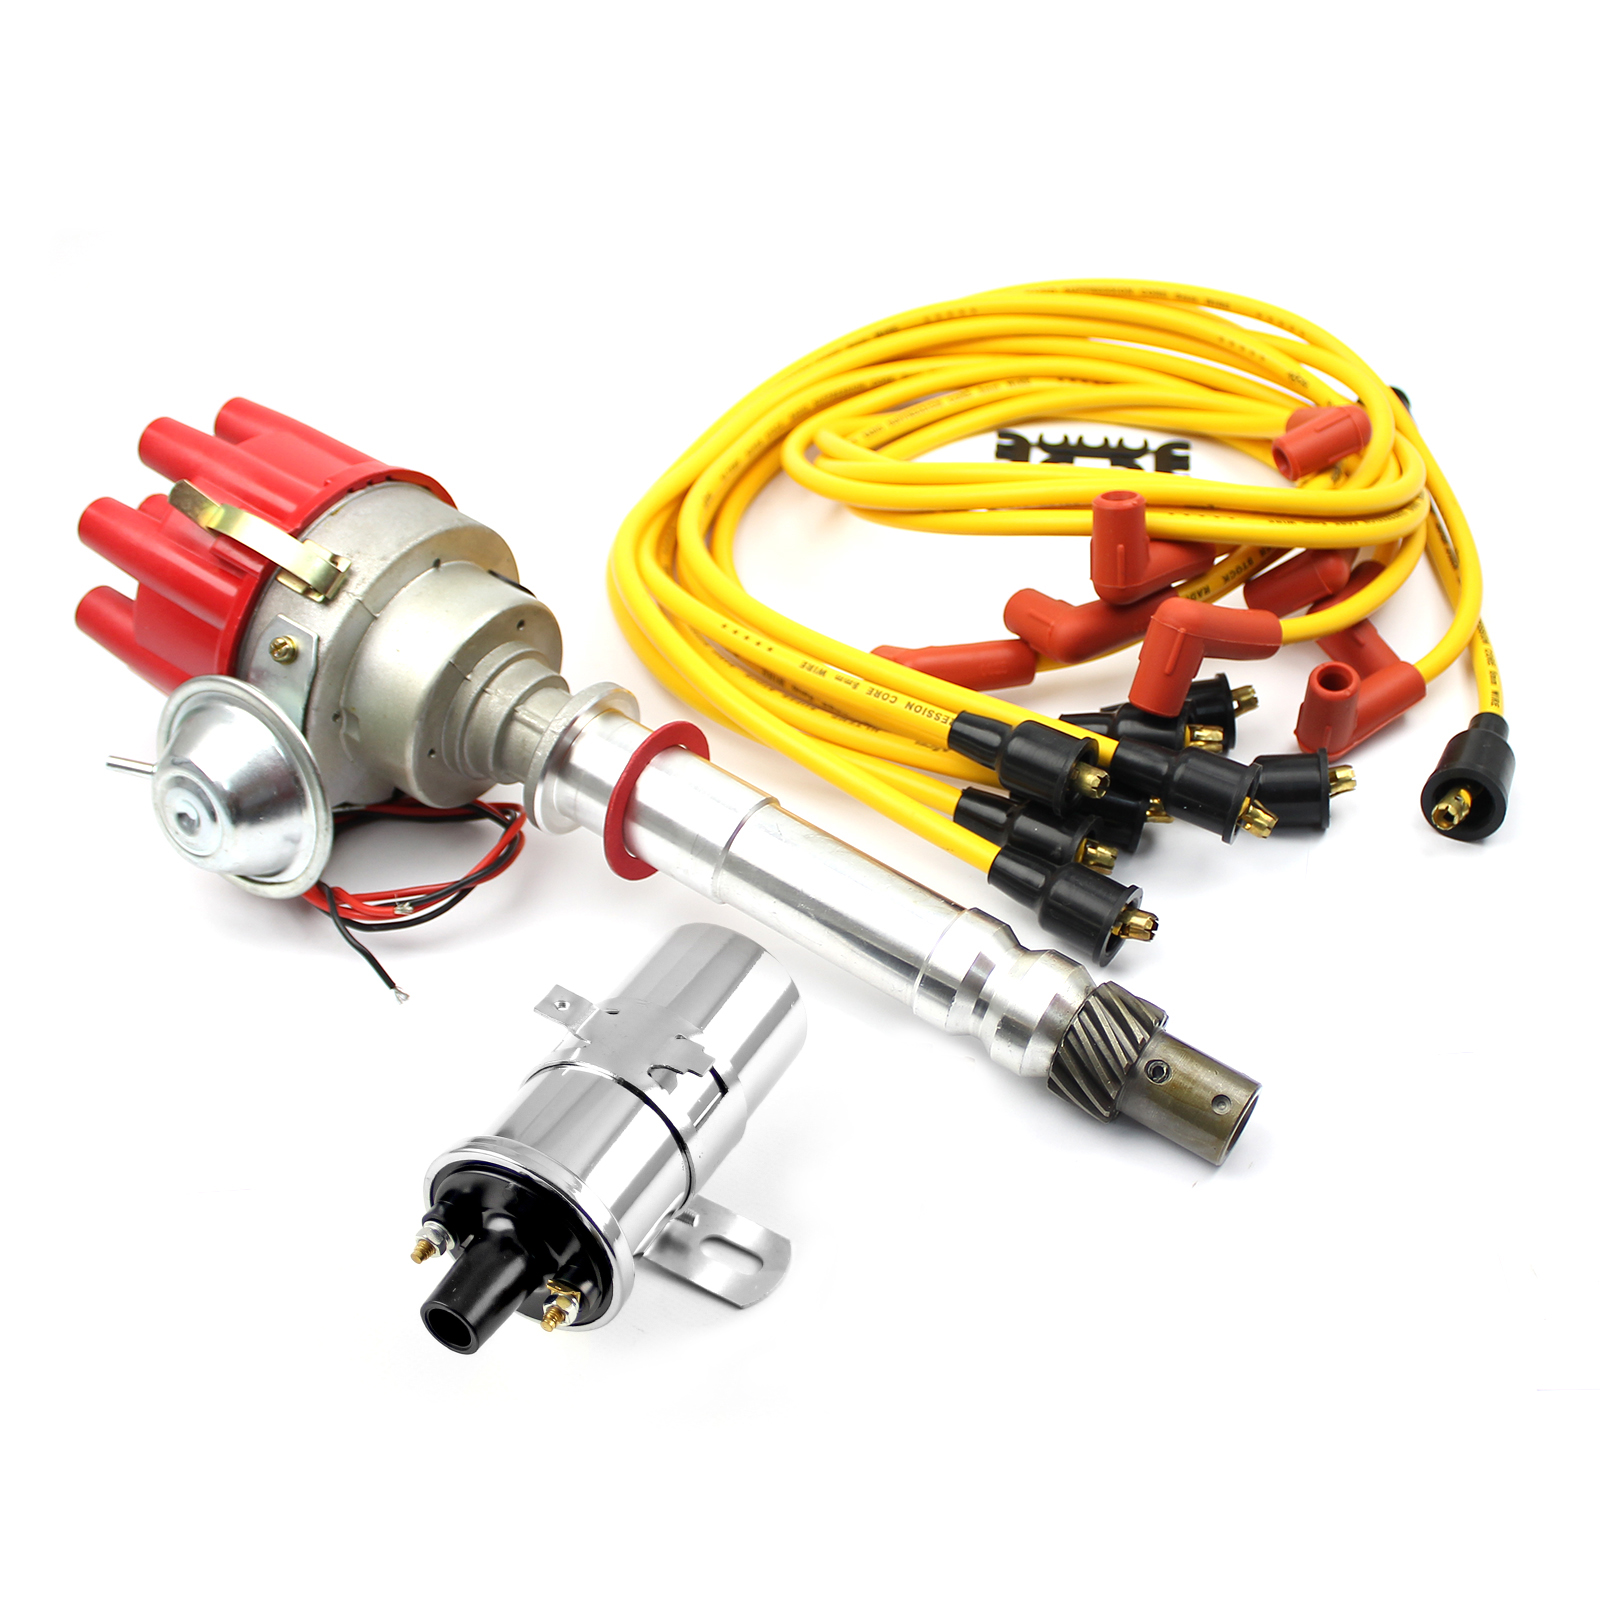 Chevy SBC 350 BBC 454 Distributor (Vacuum) Red + Chrome Coil + Accel Wire Leads